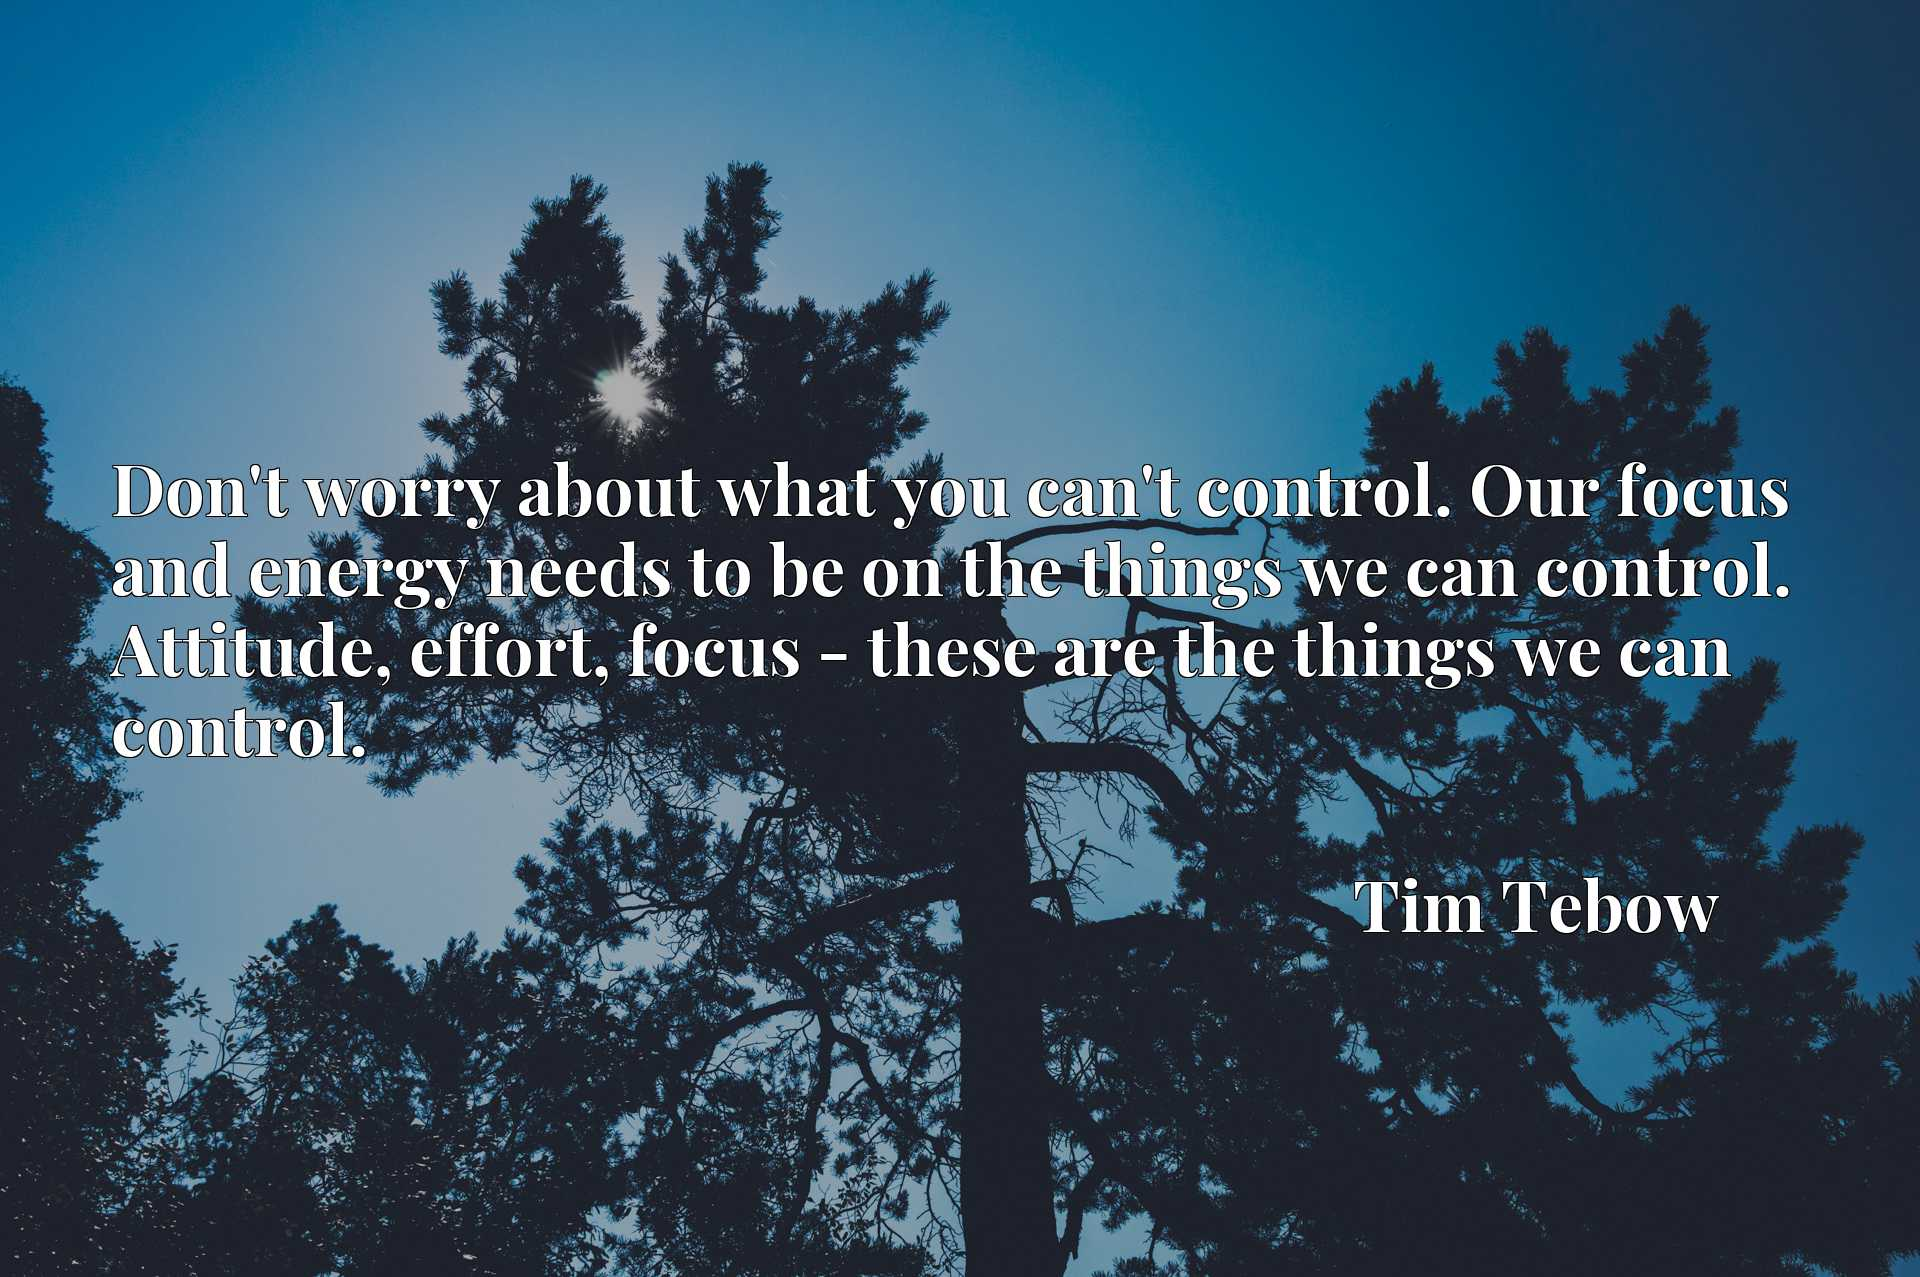 Don't worry about what you can't control. Our focus and energy needs to be on the things we can control. Attitude, effort, focus - these are the things we can control.